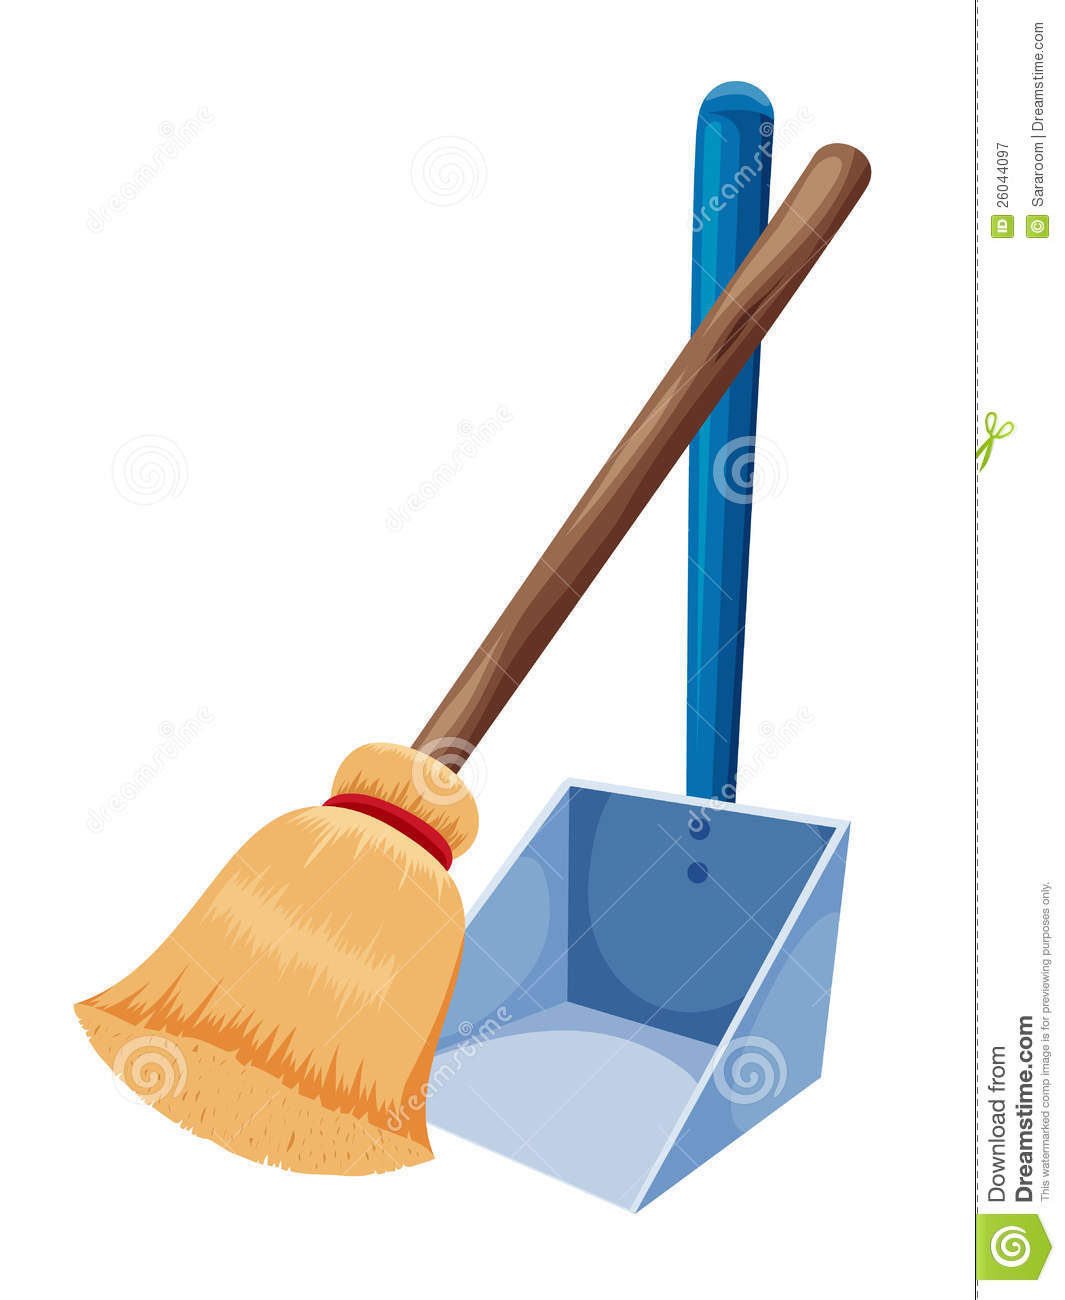 Dust clipart dustpan brush. Pan and broom